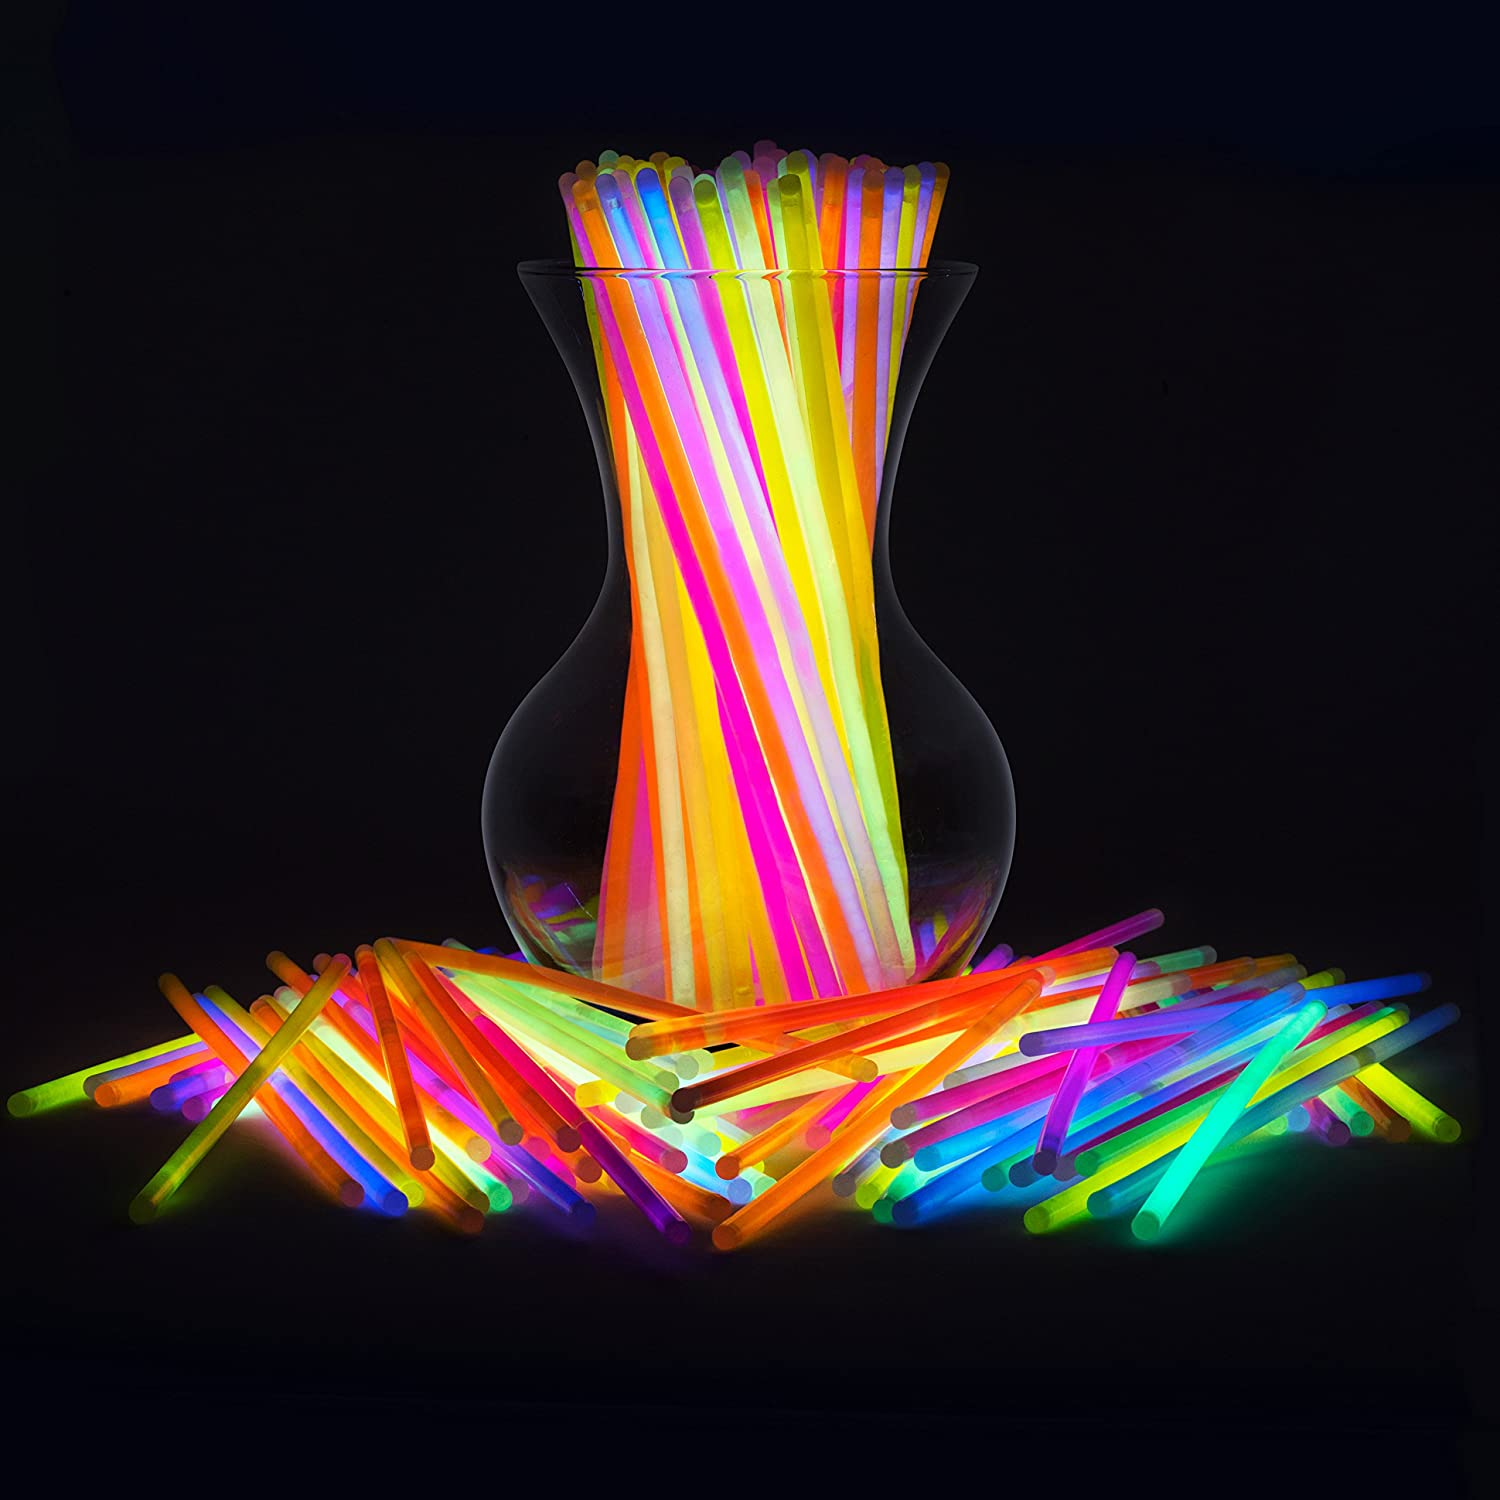 "Glow Sticks Jewelry Bulk Party Favors 300pk - 8"" Glow in the Dark Party Supplies, Neon Party Glow Necklaces and Bracelets for Kids or Adults"